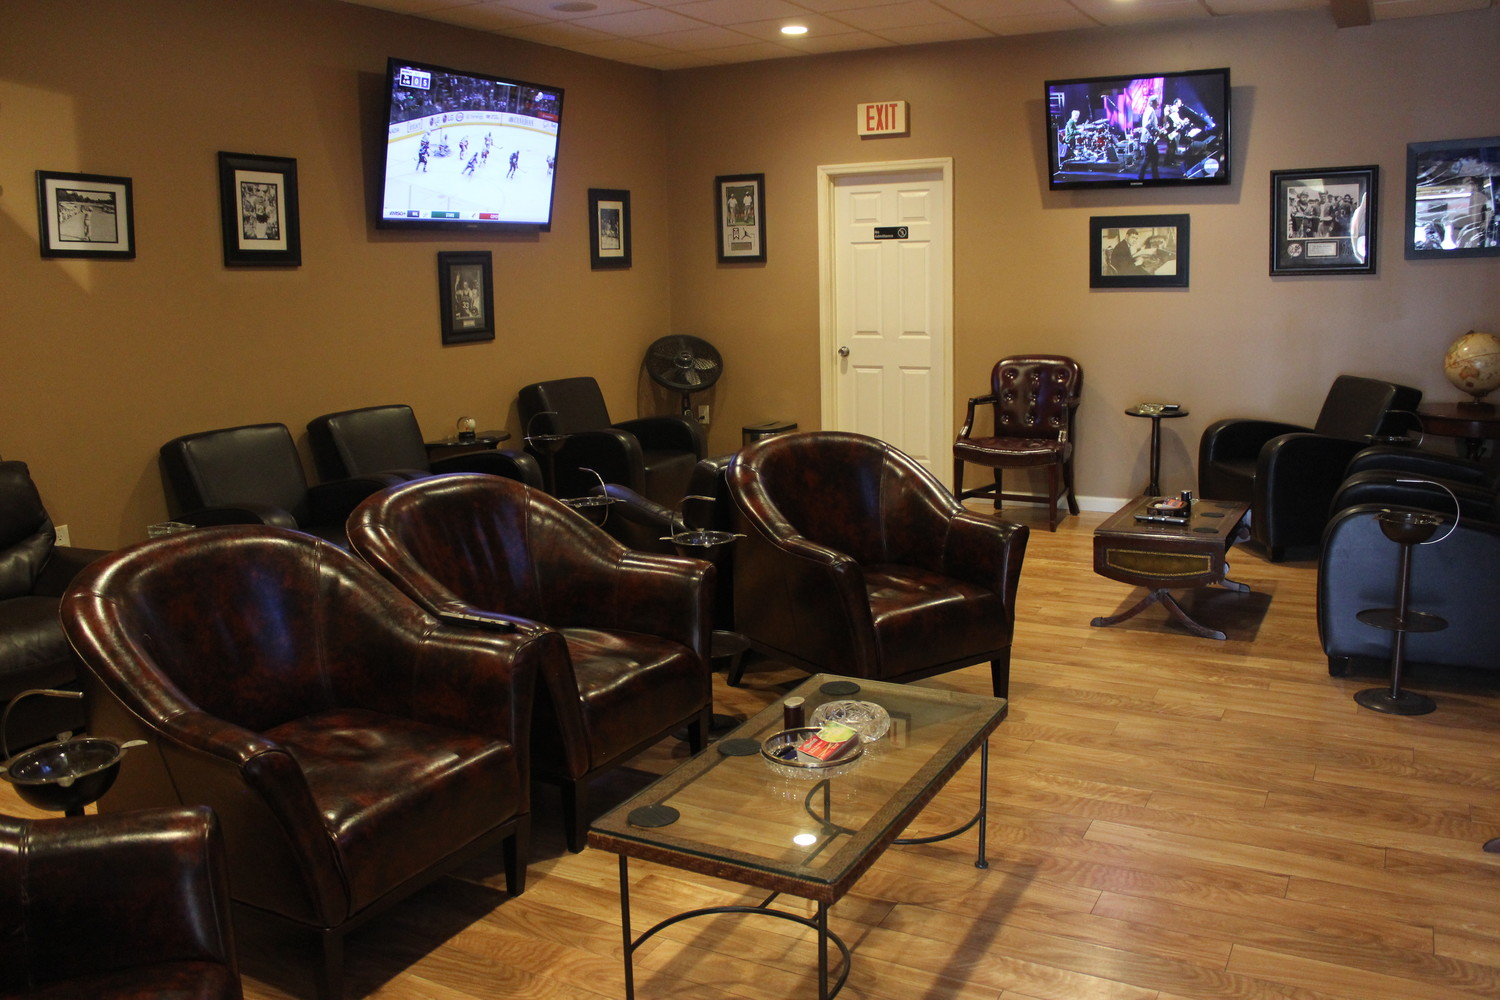 Exhale Cigars' luxury cigar lounge has ten leather couches, three televisions and an electronic fireplace.